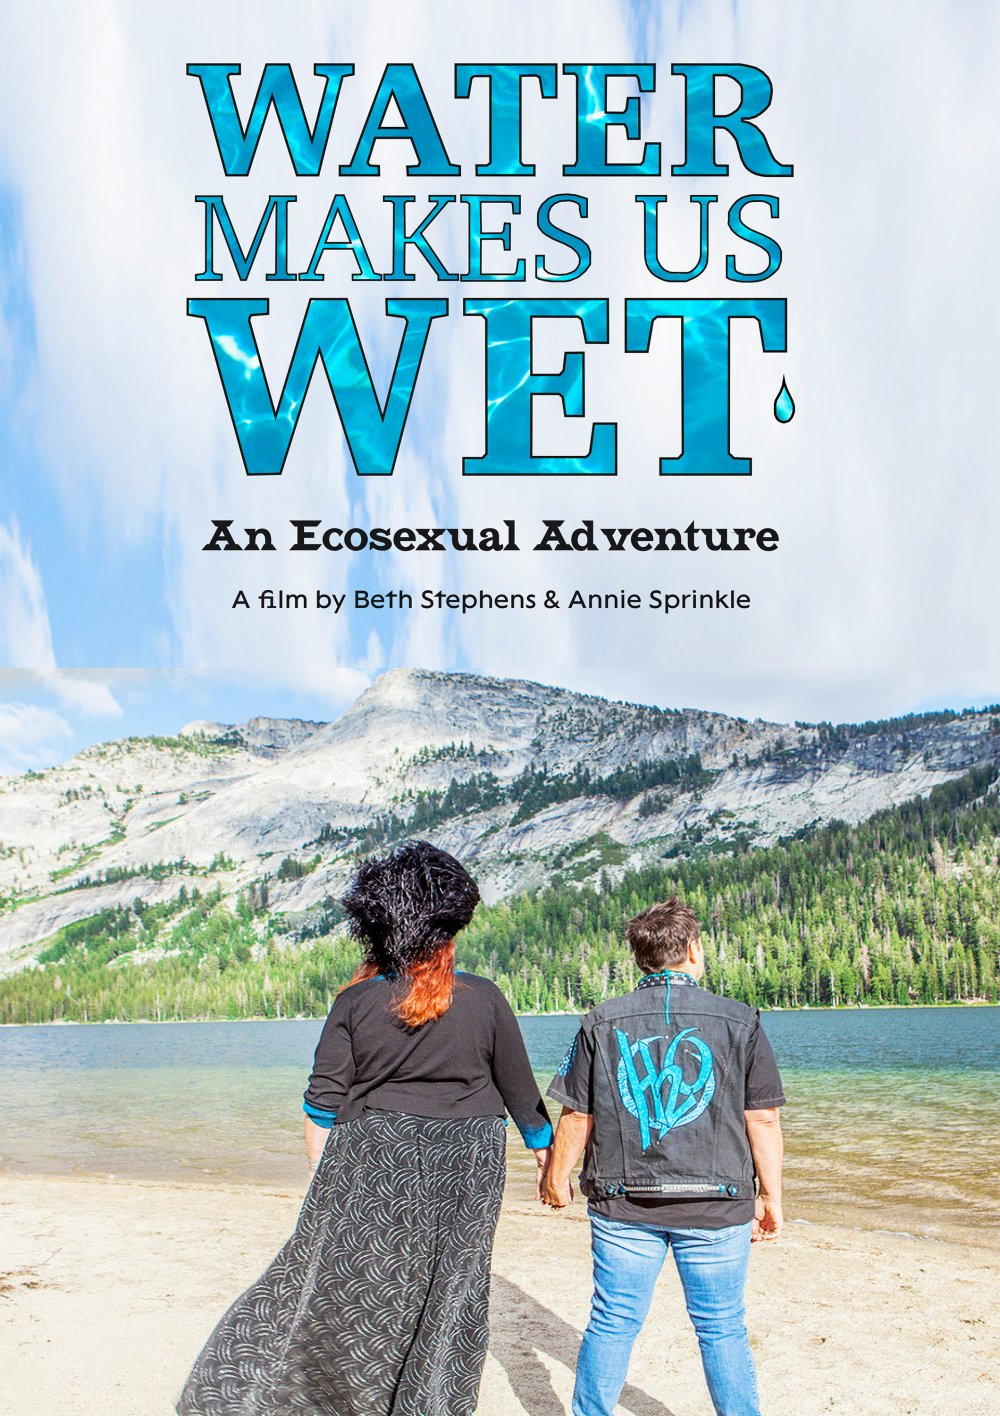 <strong>Water Makes Us Wet: An Ecosexual Adventure</strong> – Ecosexual lovers Annie Sprinkle and Beth Stephens travel the US in an erotic quest to understand this precious natural resource